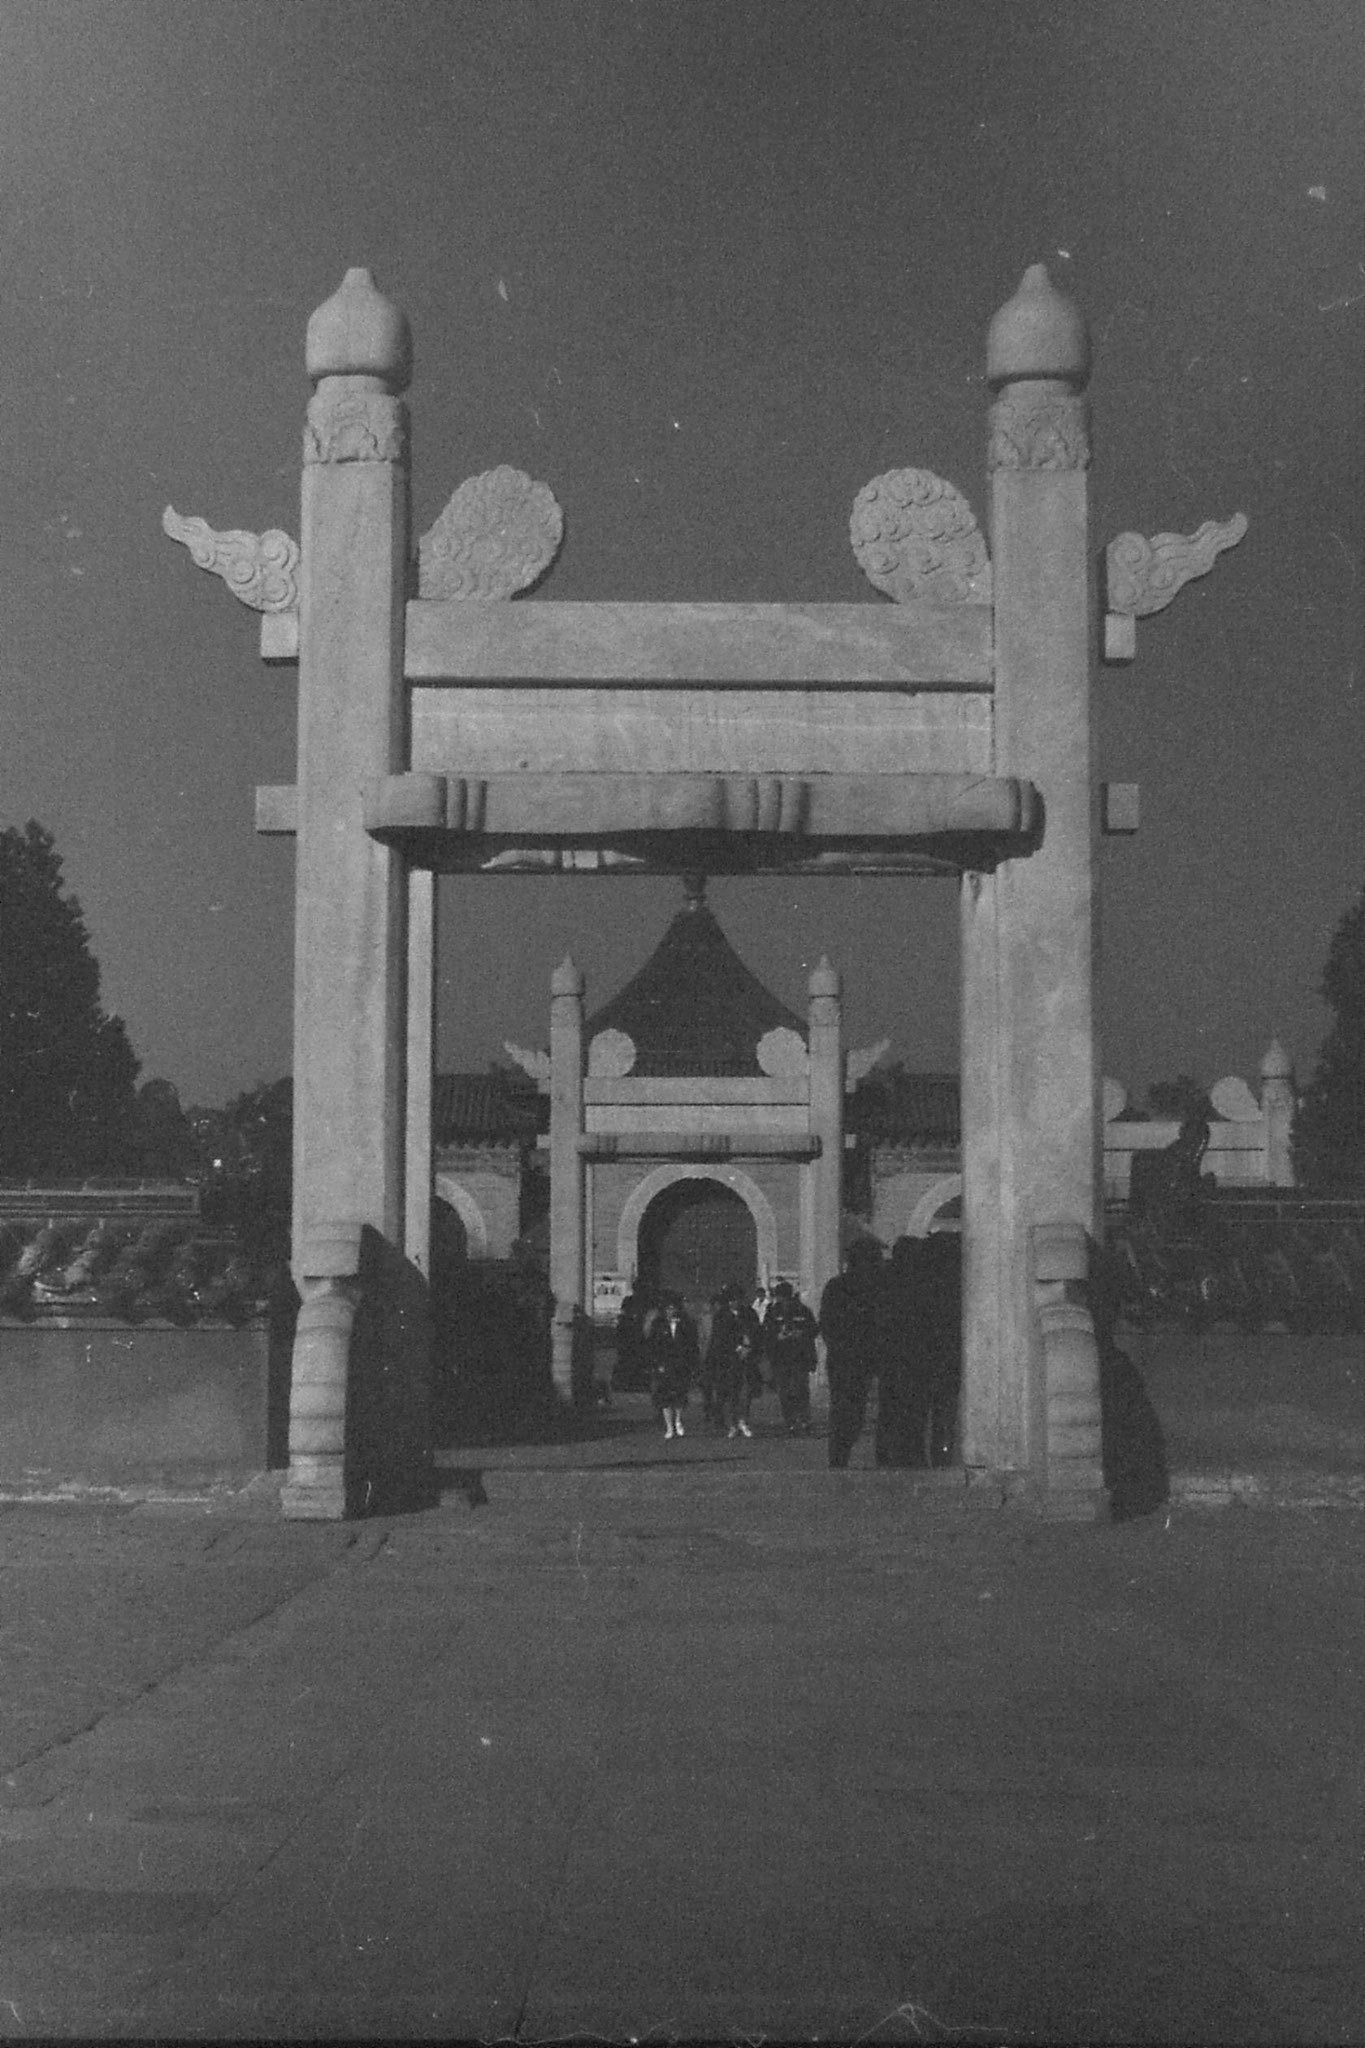 2/12/1988: 32: nr and in Tiantan park